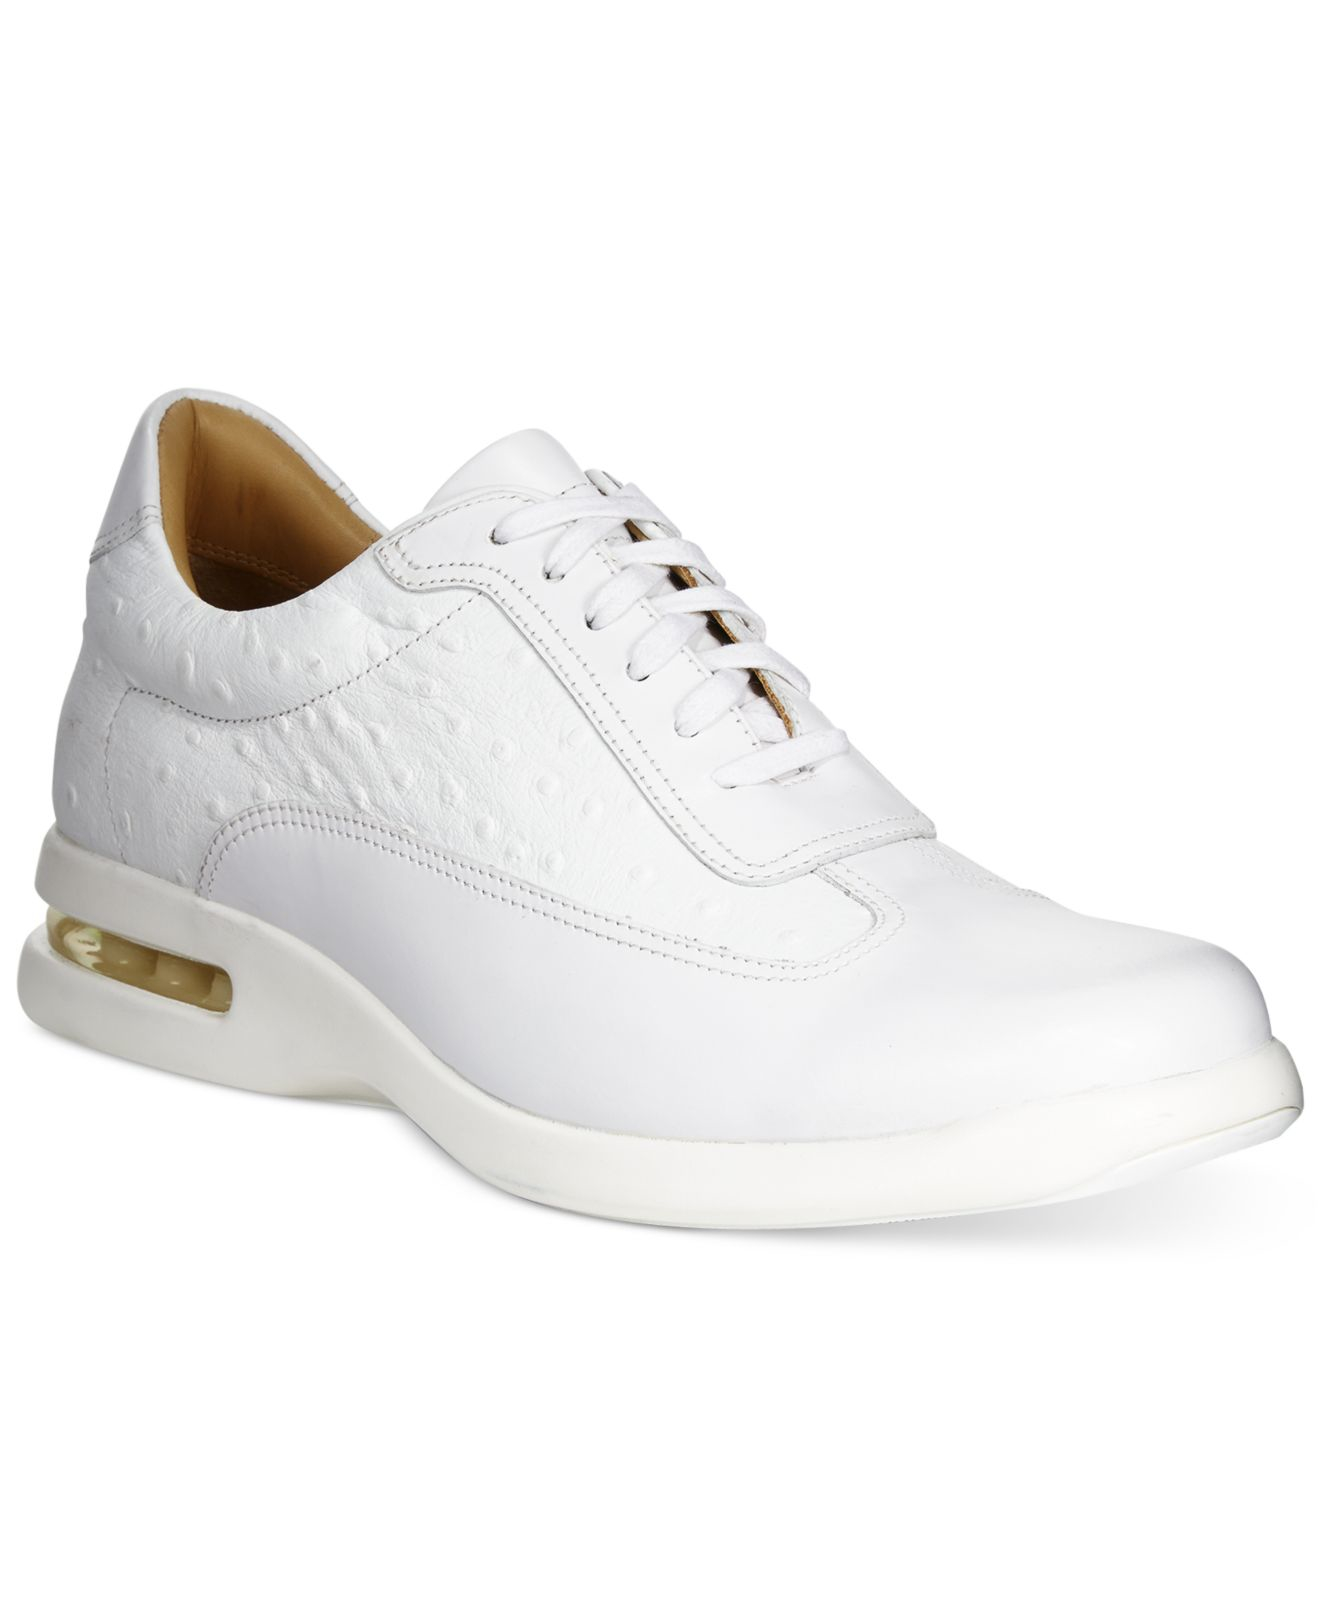 Cole Haan Conner Air Sneakers In White For Men Lyst